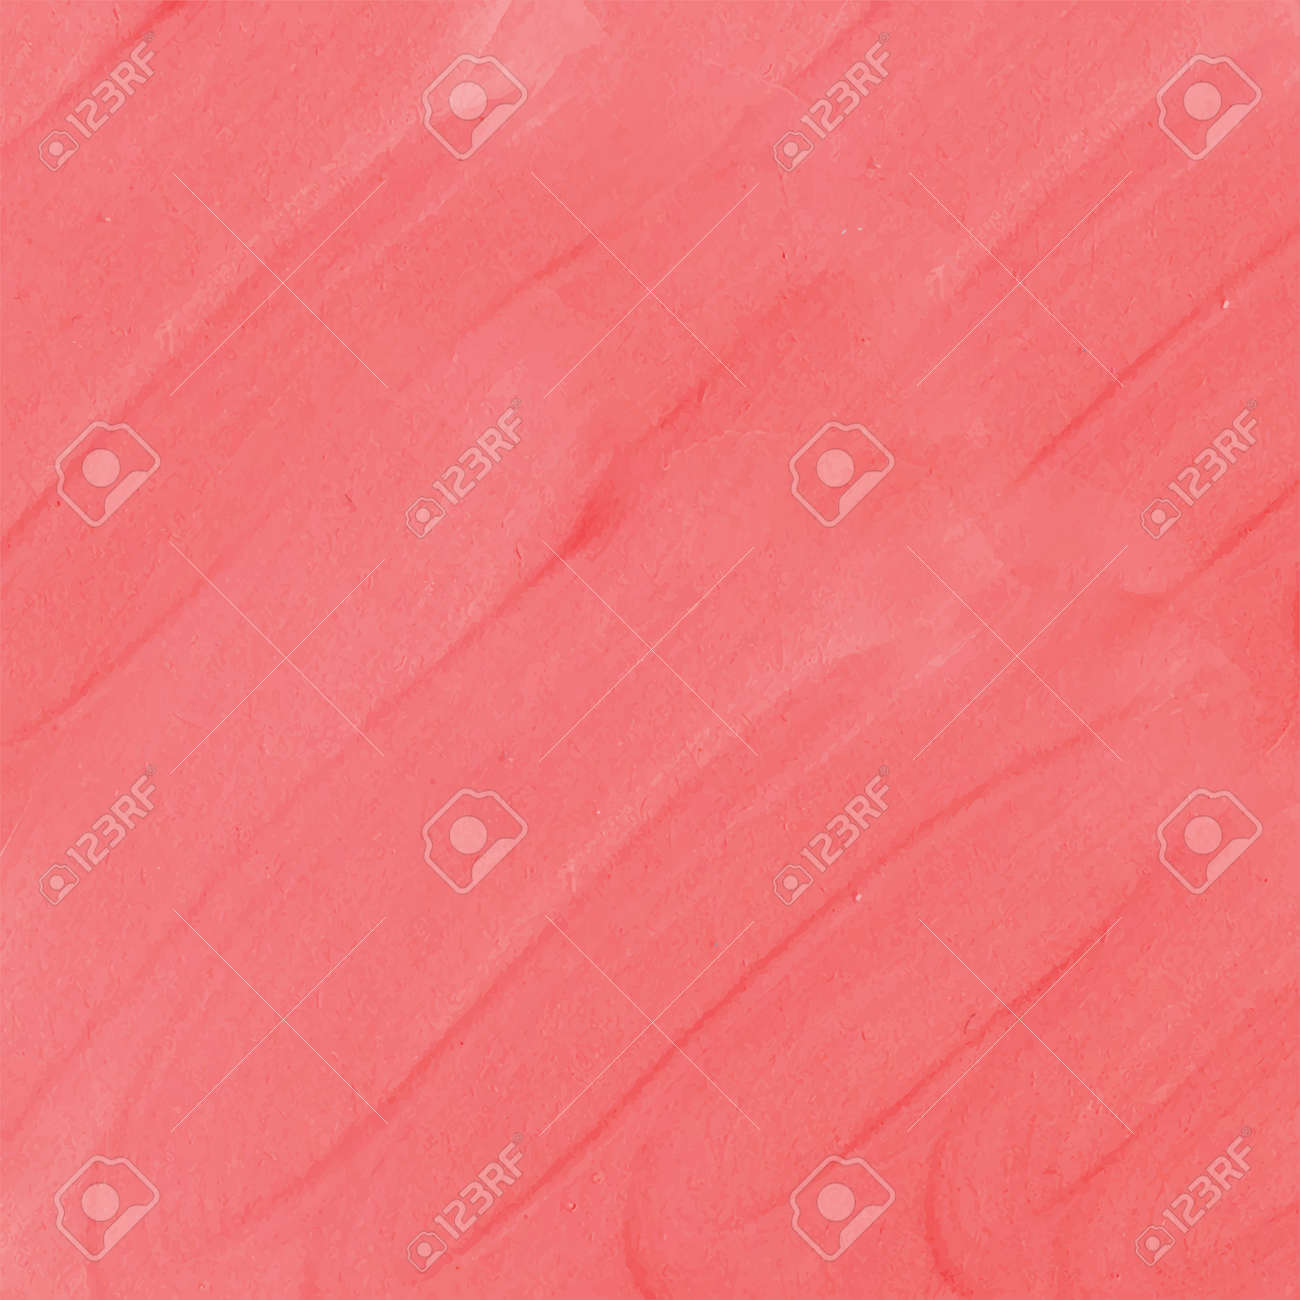 Abstract pink watercolor background hand drawn illustration - 169282108